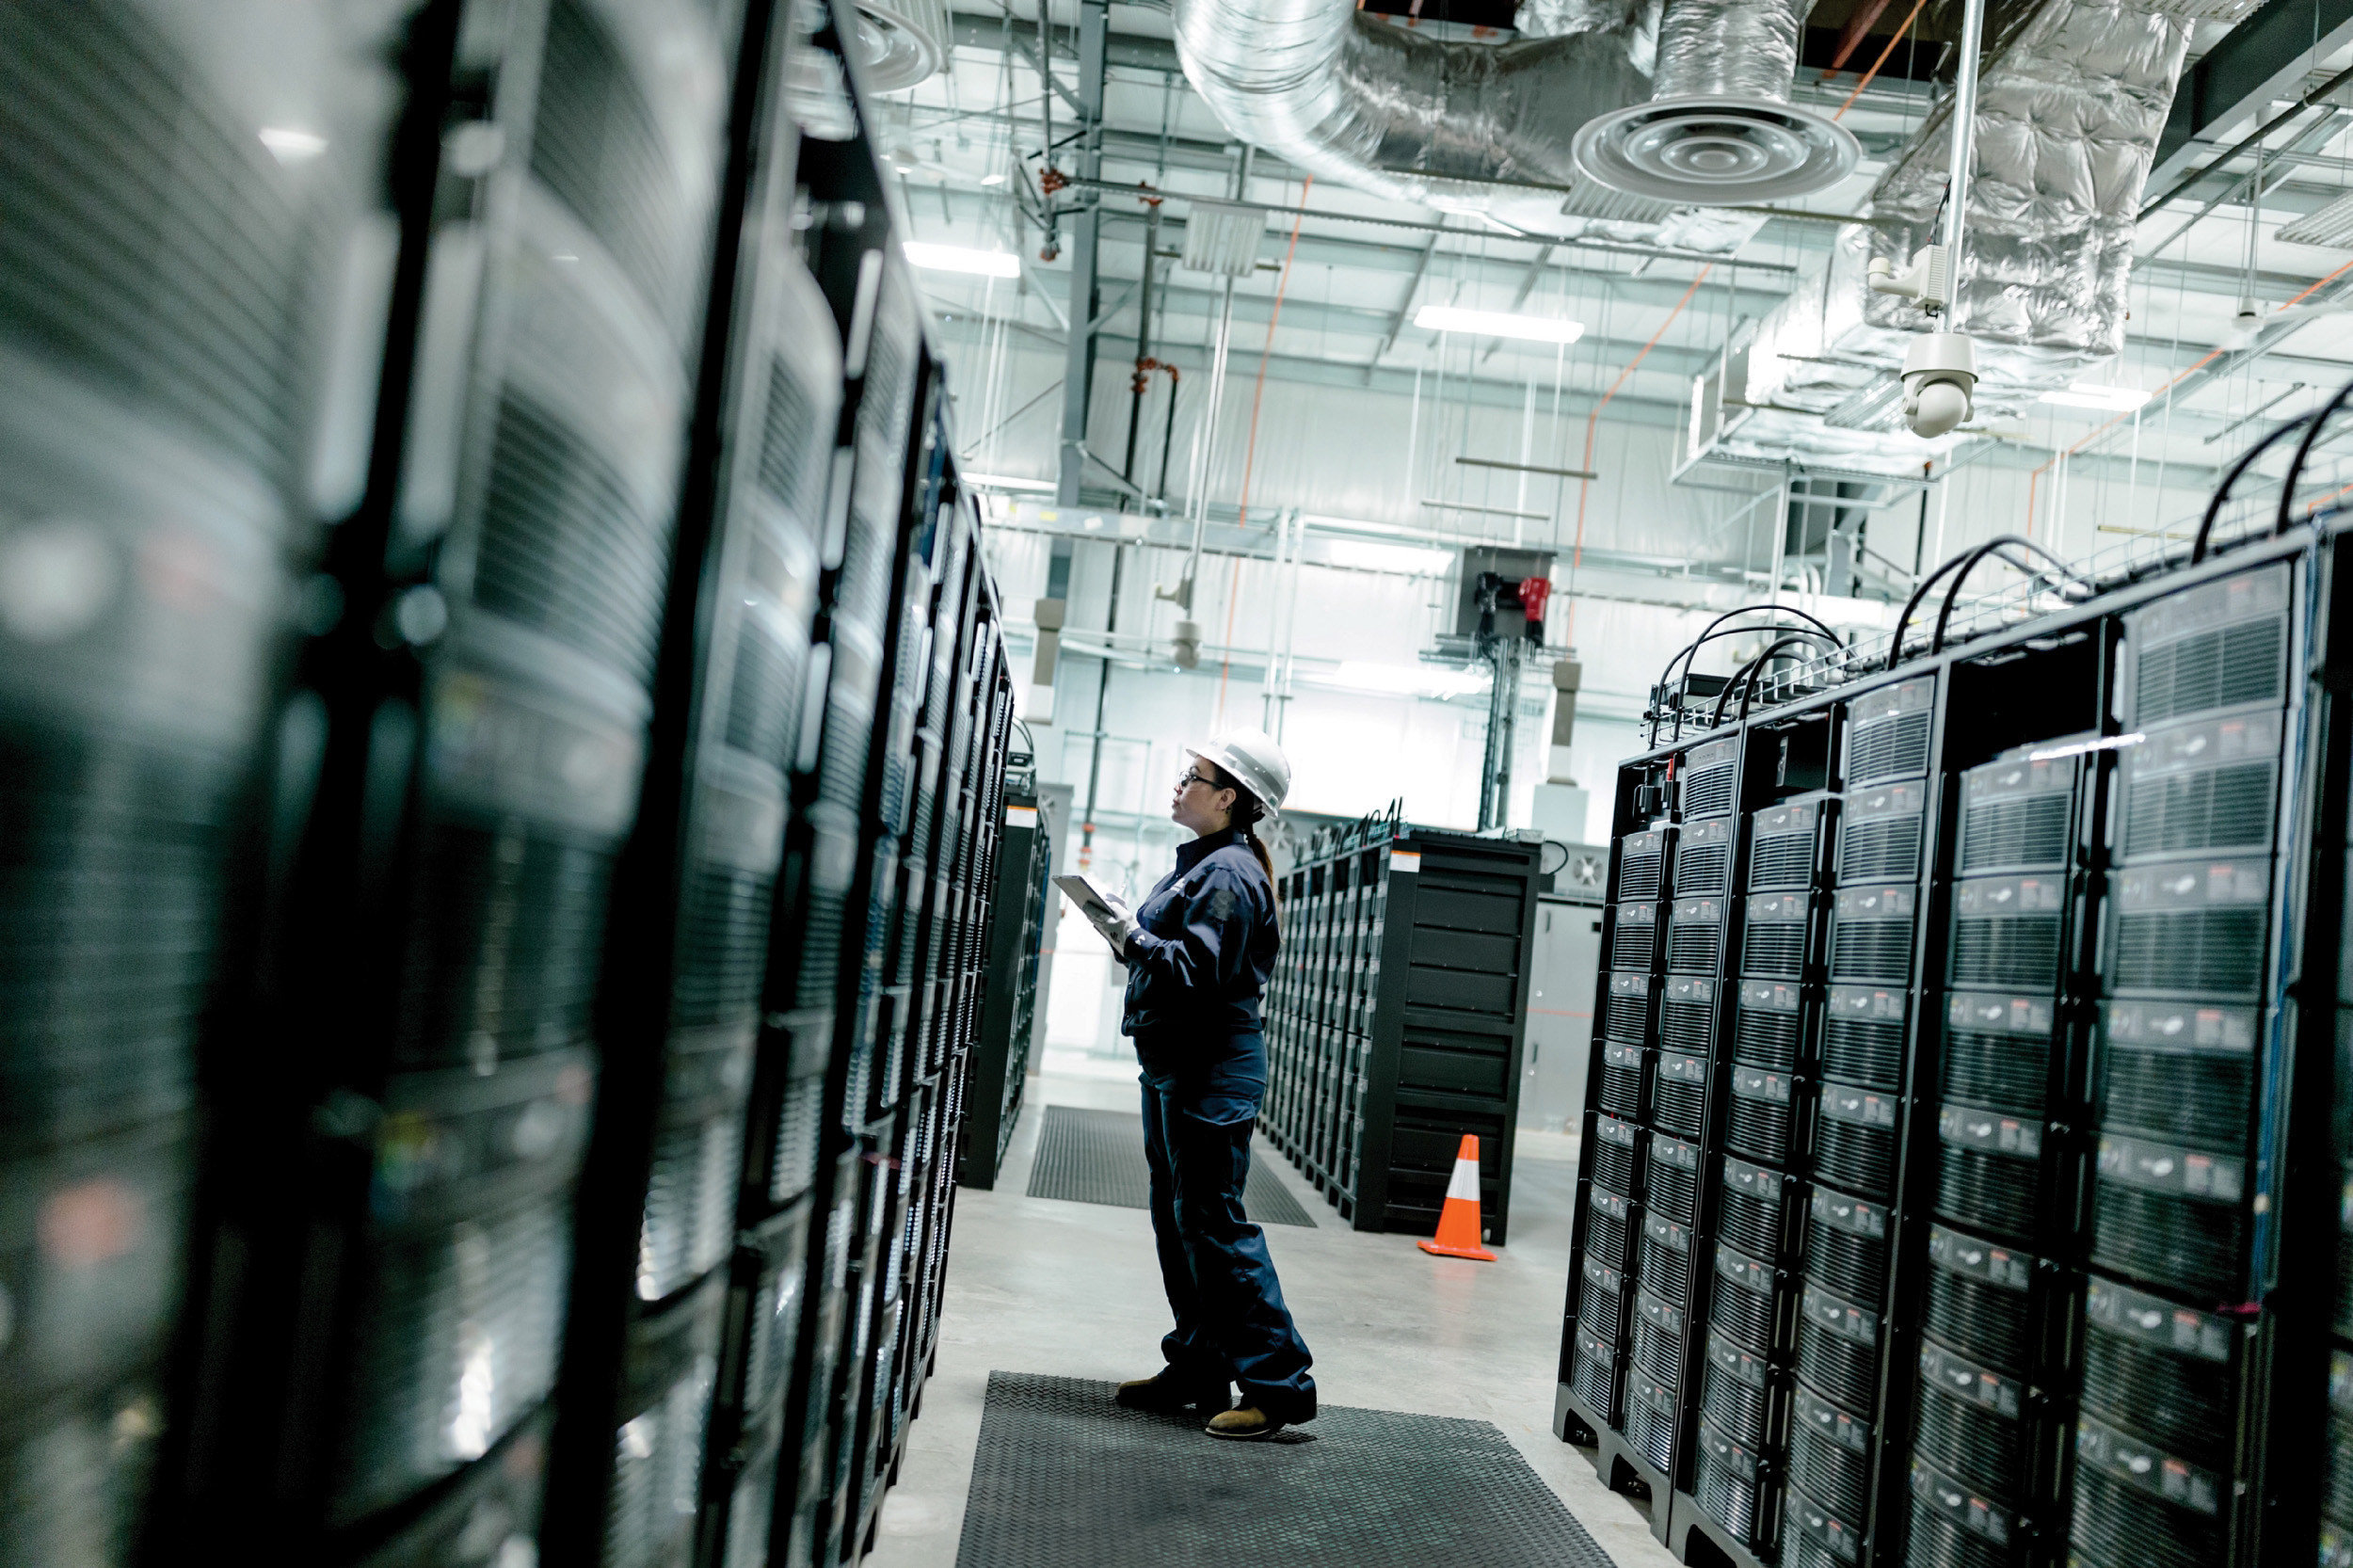 Broad Reach, Sungrow agree on equipment supply for 1,000 MW in Texas energy storage projects